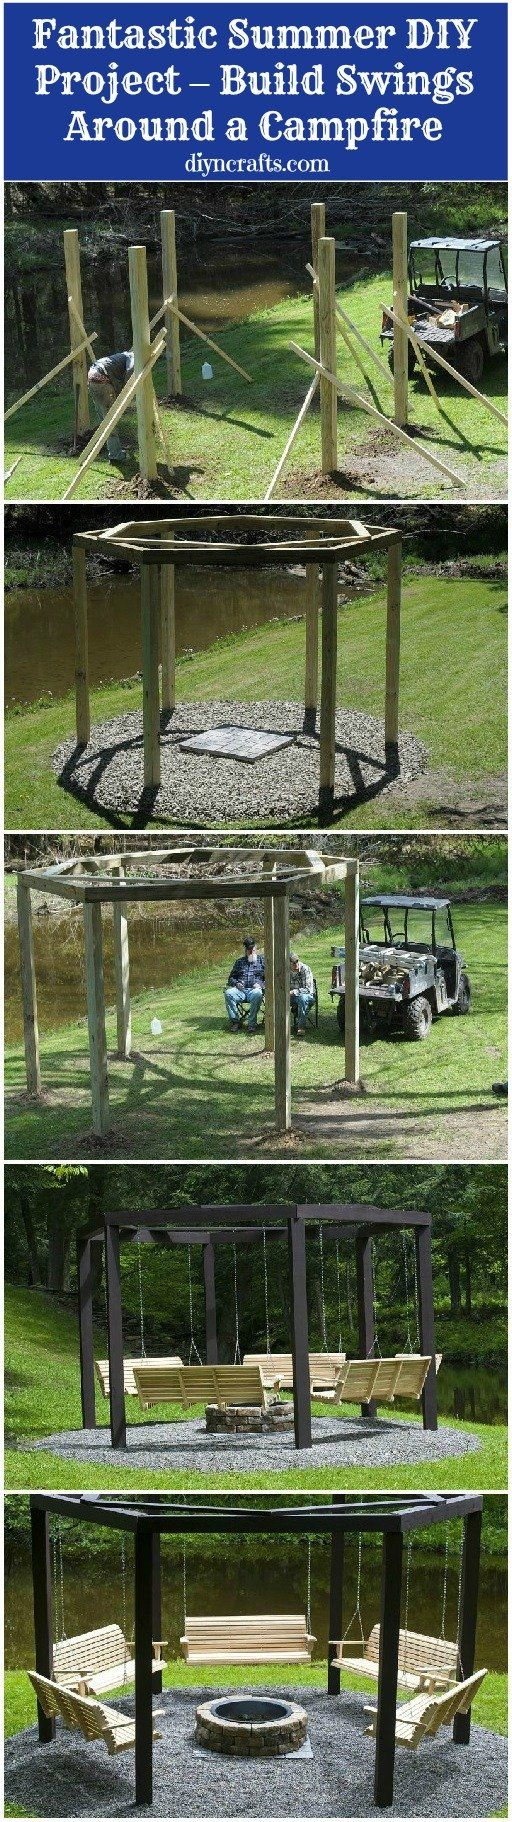 Swings around fire pit - so cool!